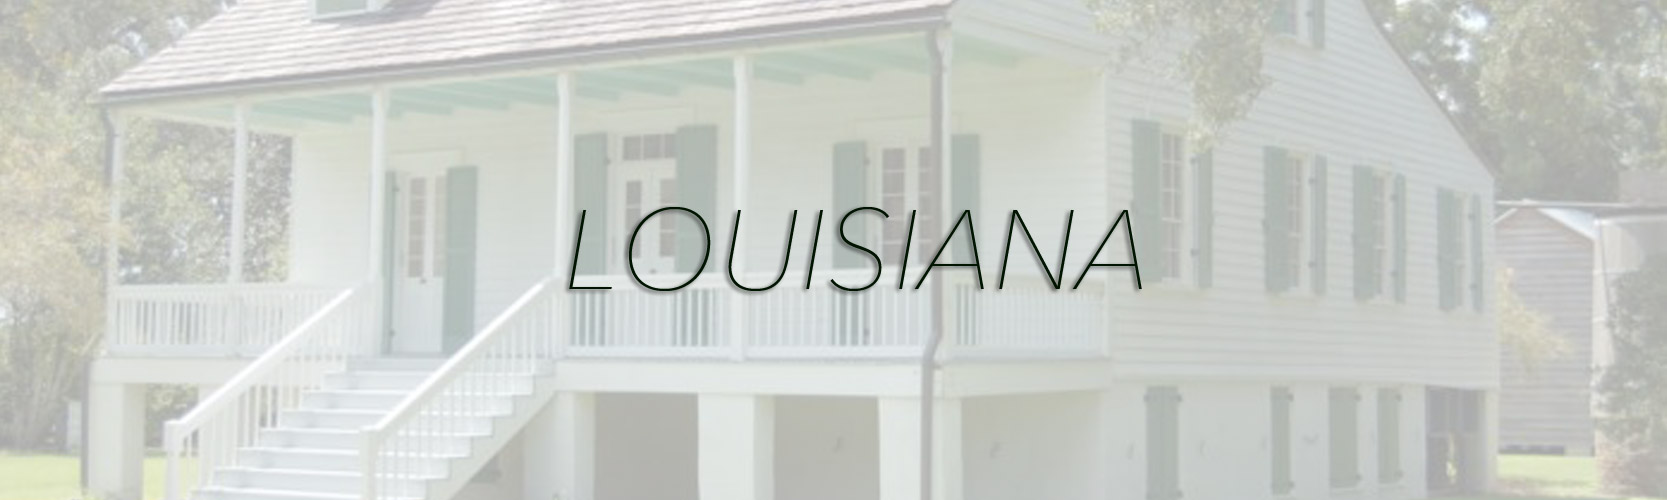 Shipping Futons, Sofa Beds, and Other Futon Shop products to Louisiana